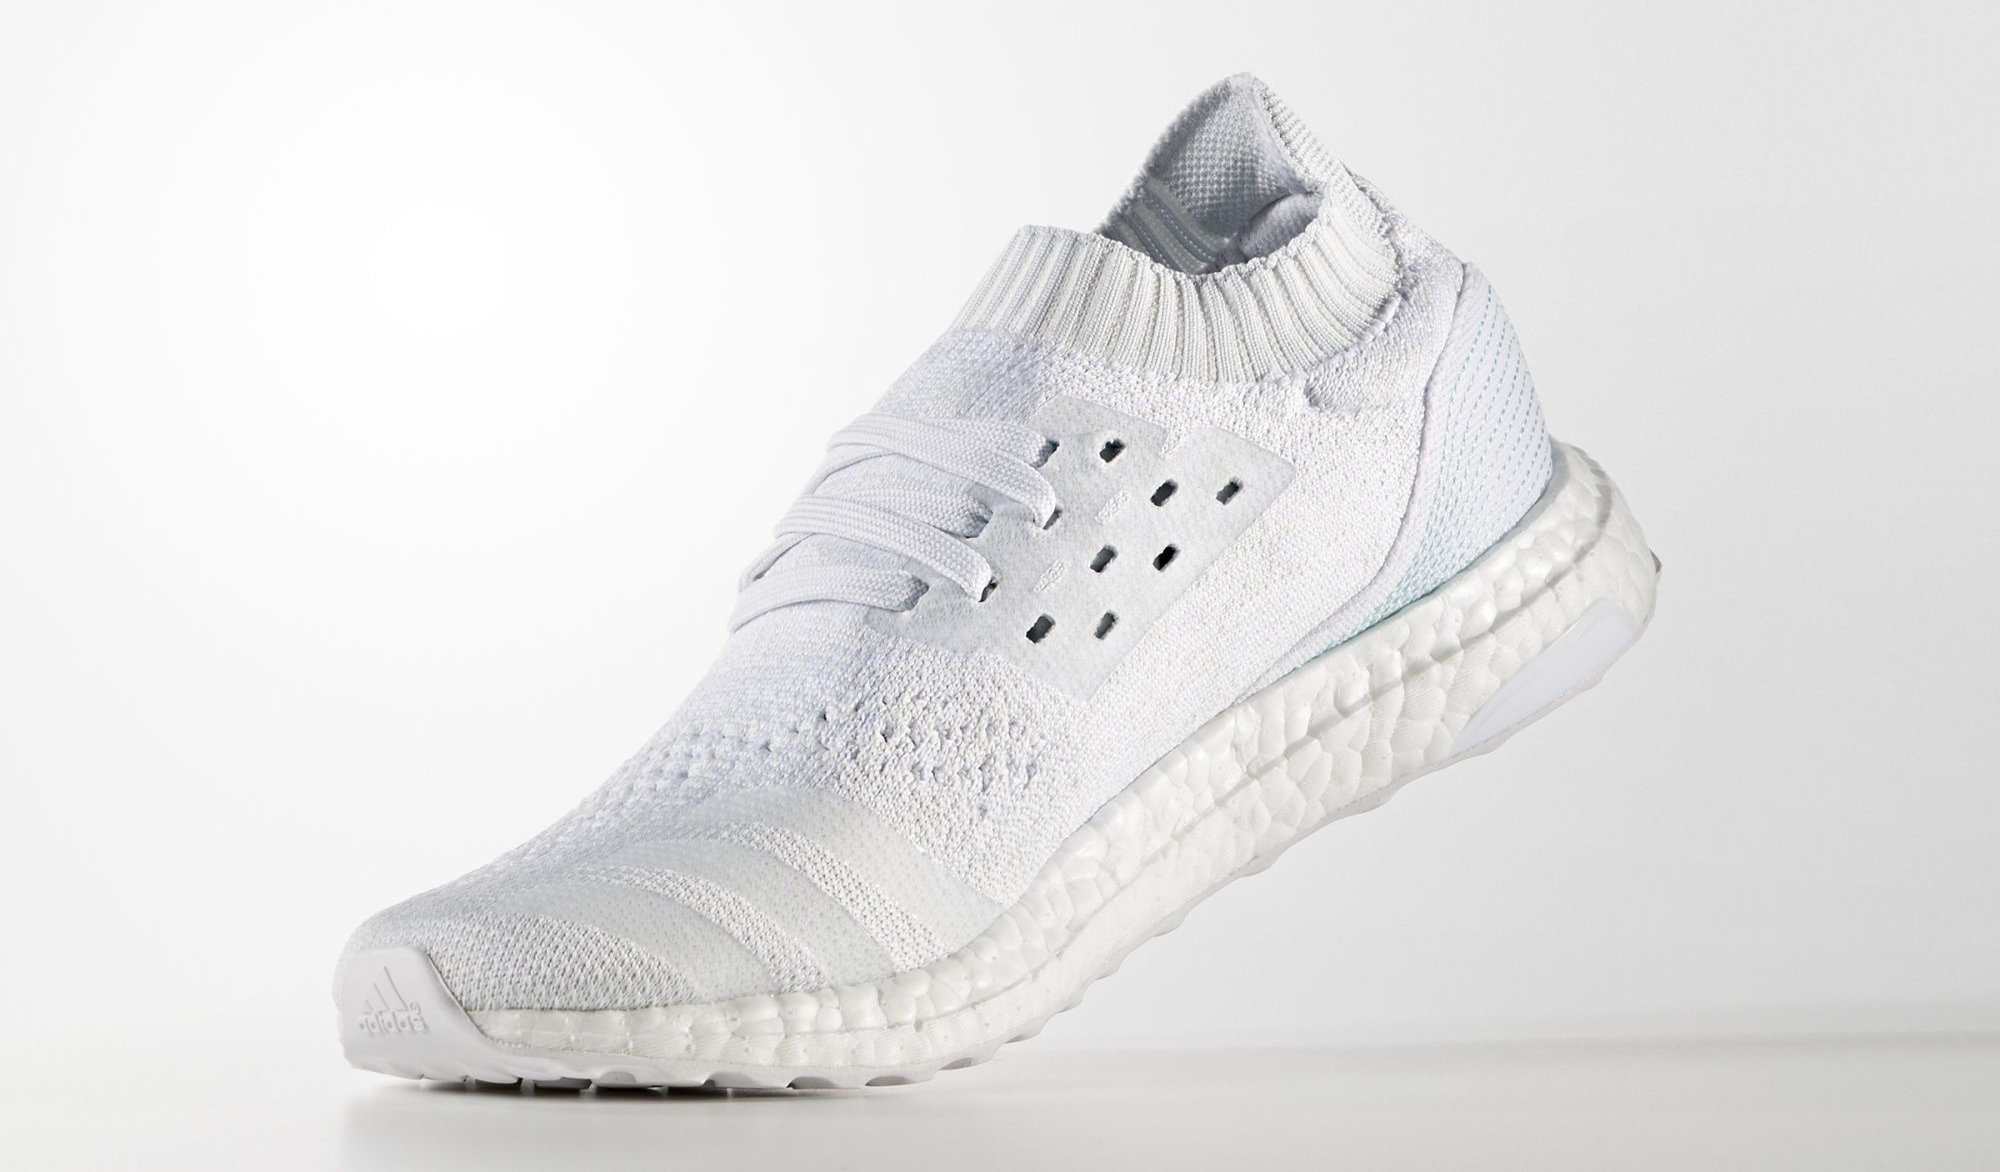 Parley Adidas Ultra Boost Uncaged Medial